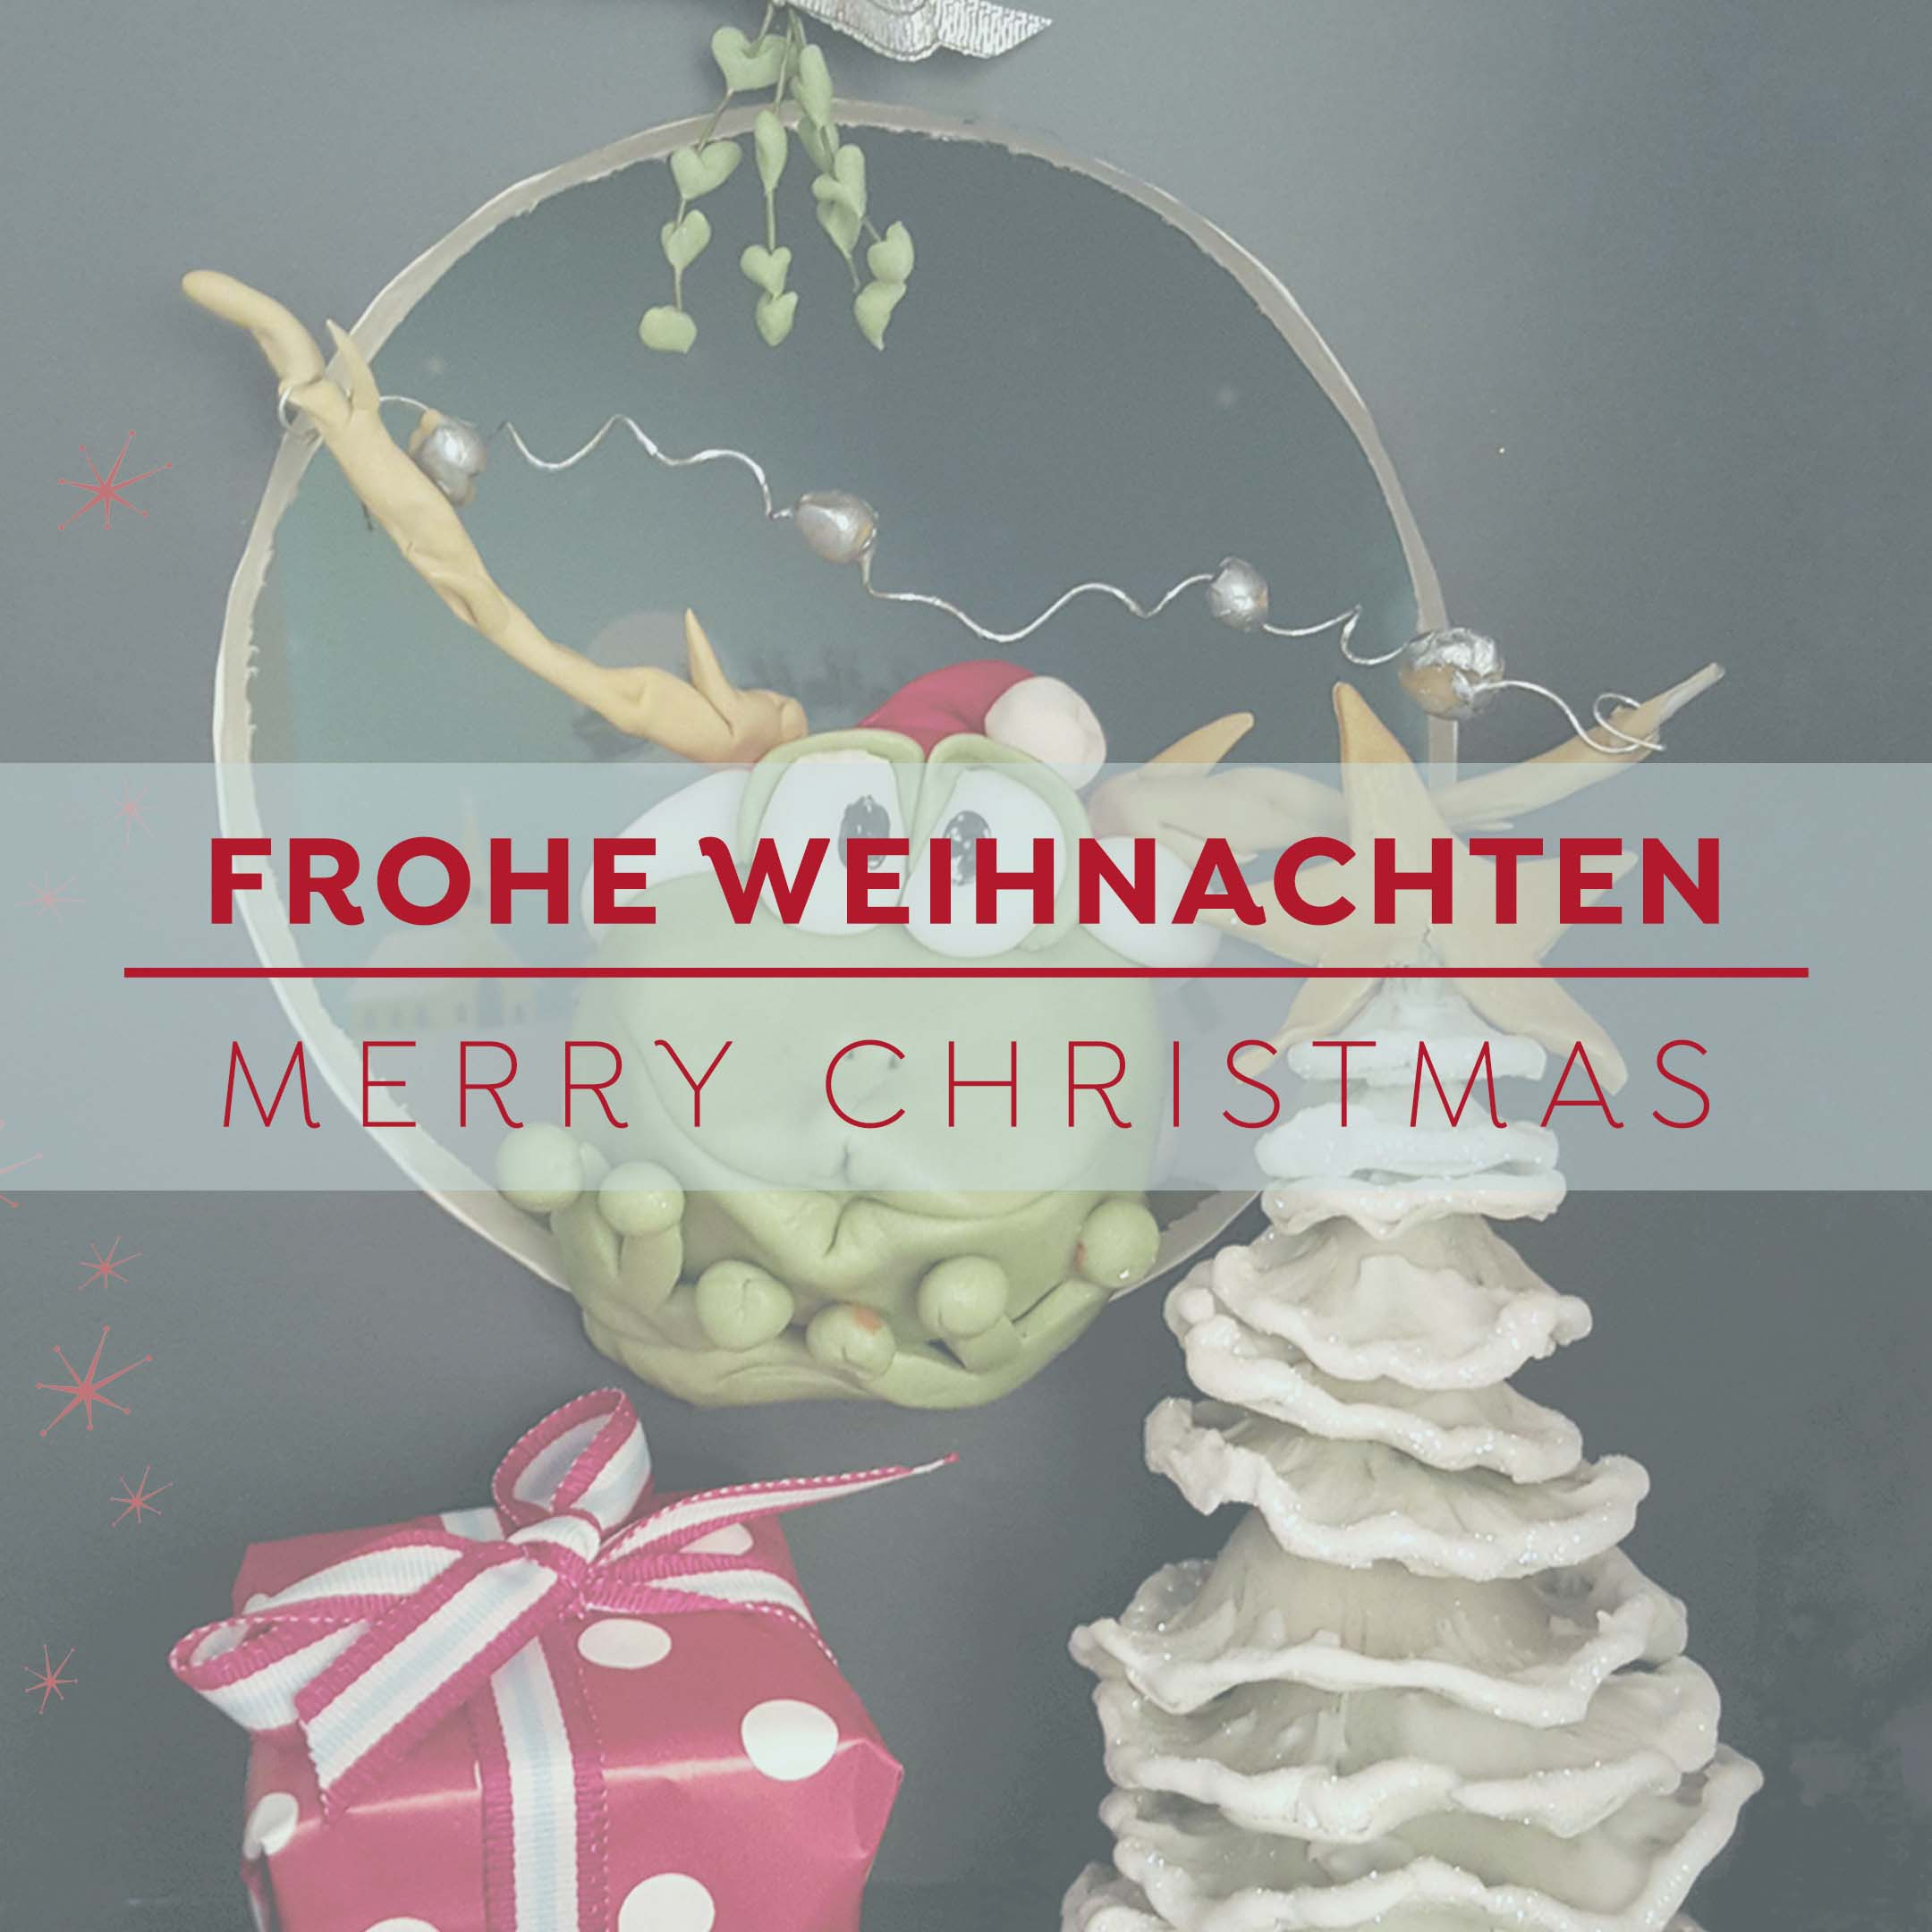 Frohe Weihnachten - Merry Christmas - Bettys Sugar Dreams